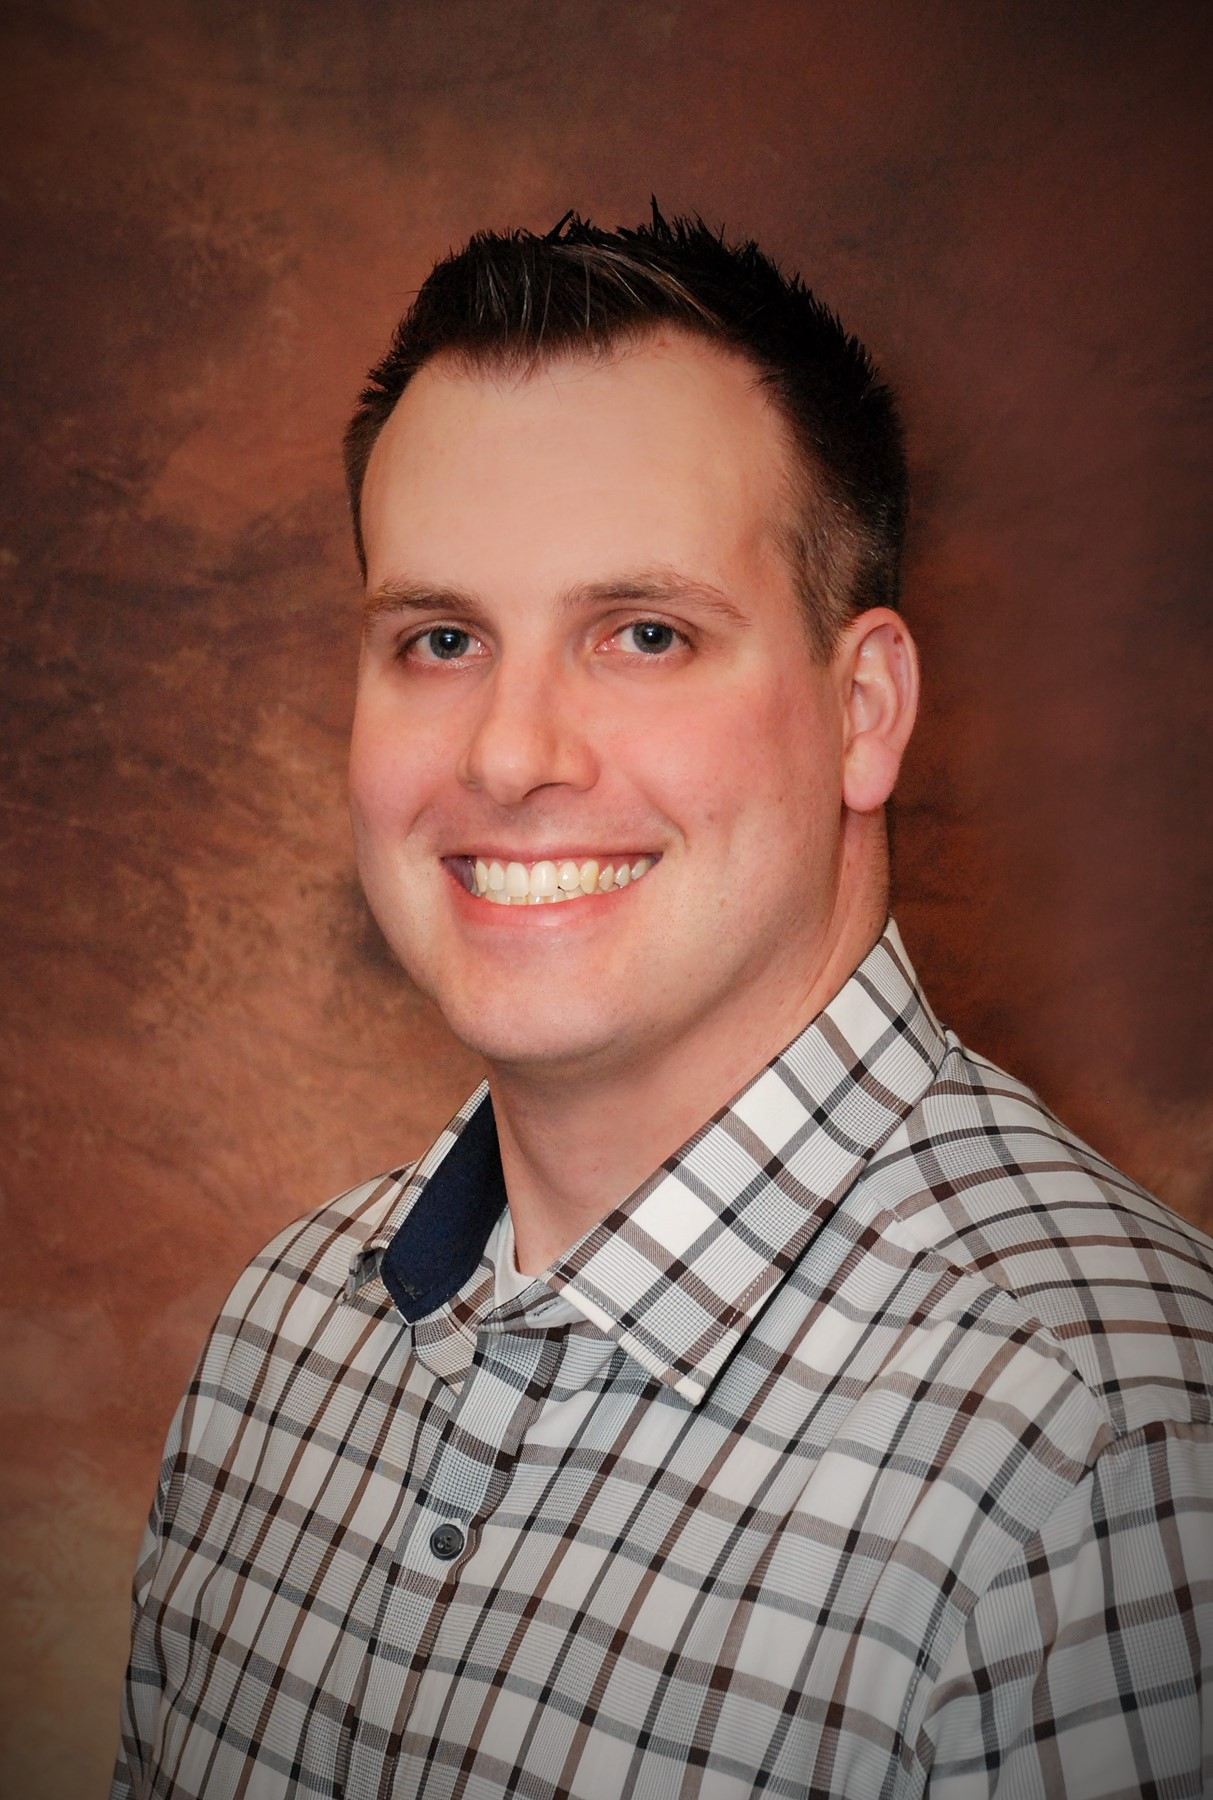 David Whittlesey - Farmers Insurance Agent in Snohomish, WA